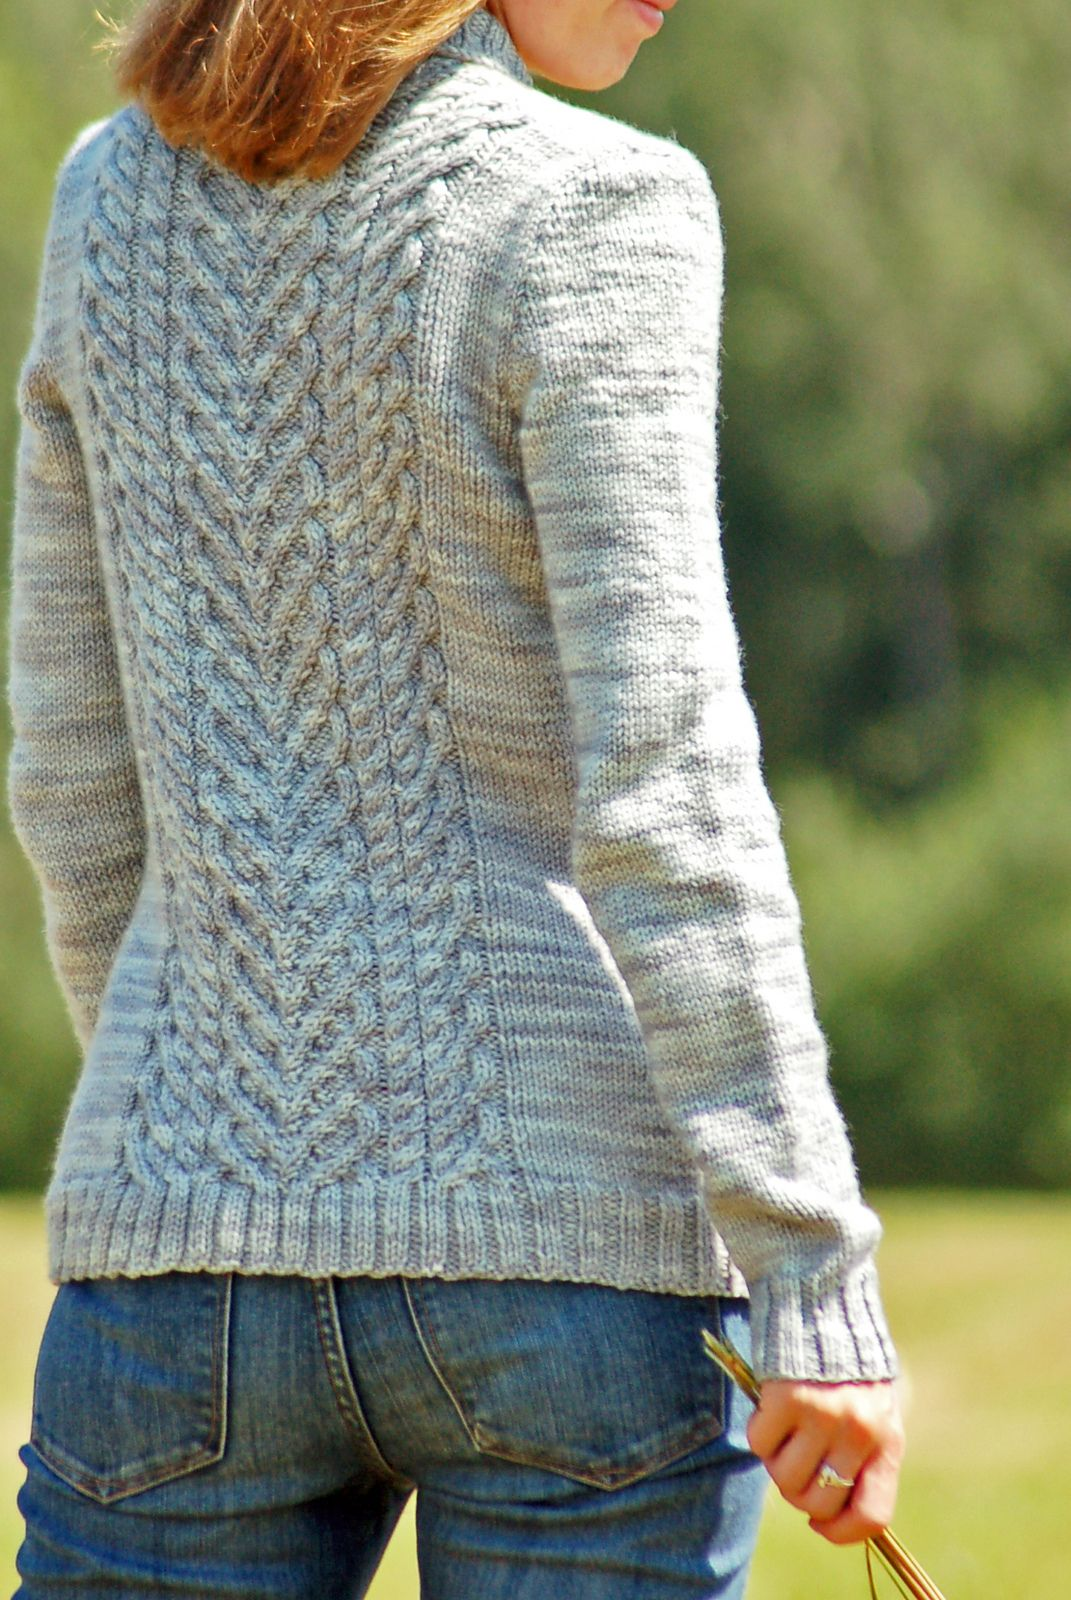 I Heart Cardigans pattern by Tanis Lavallee | Ravelry, Patterns and ...